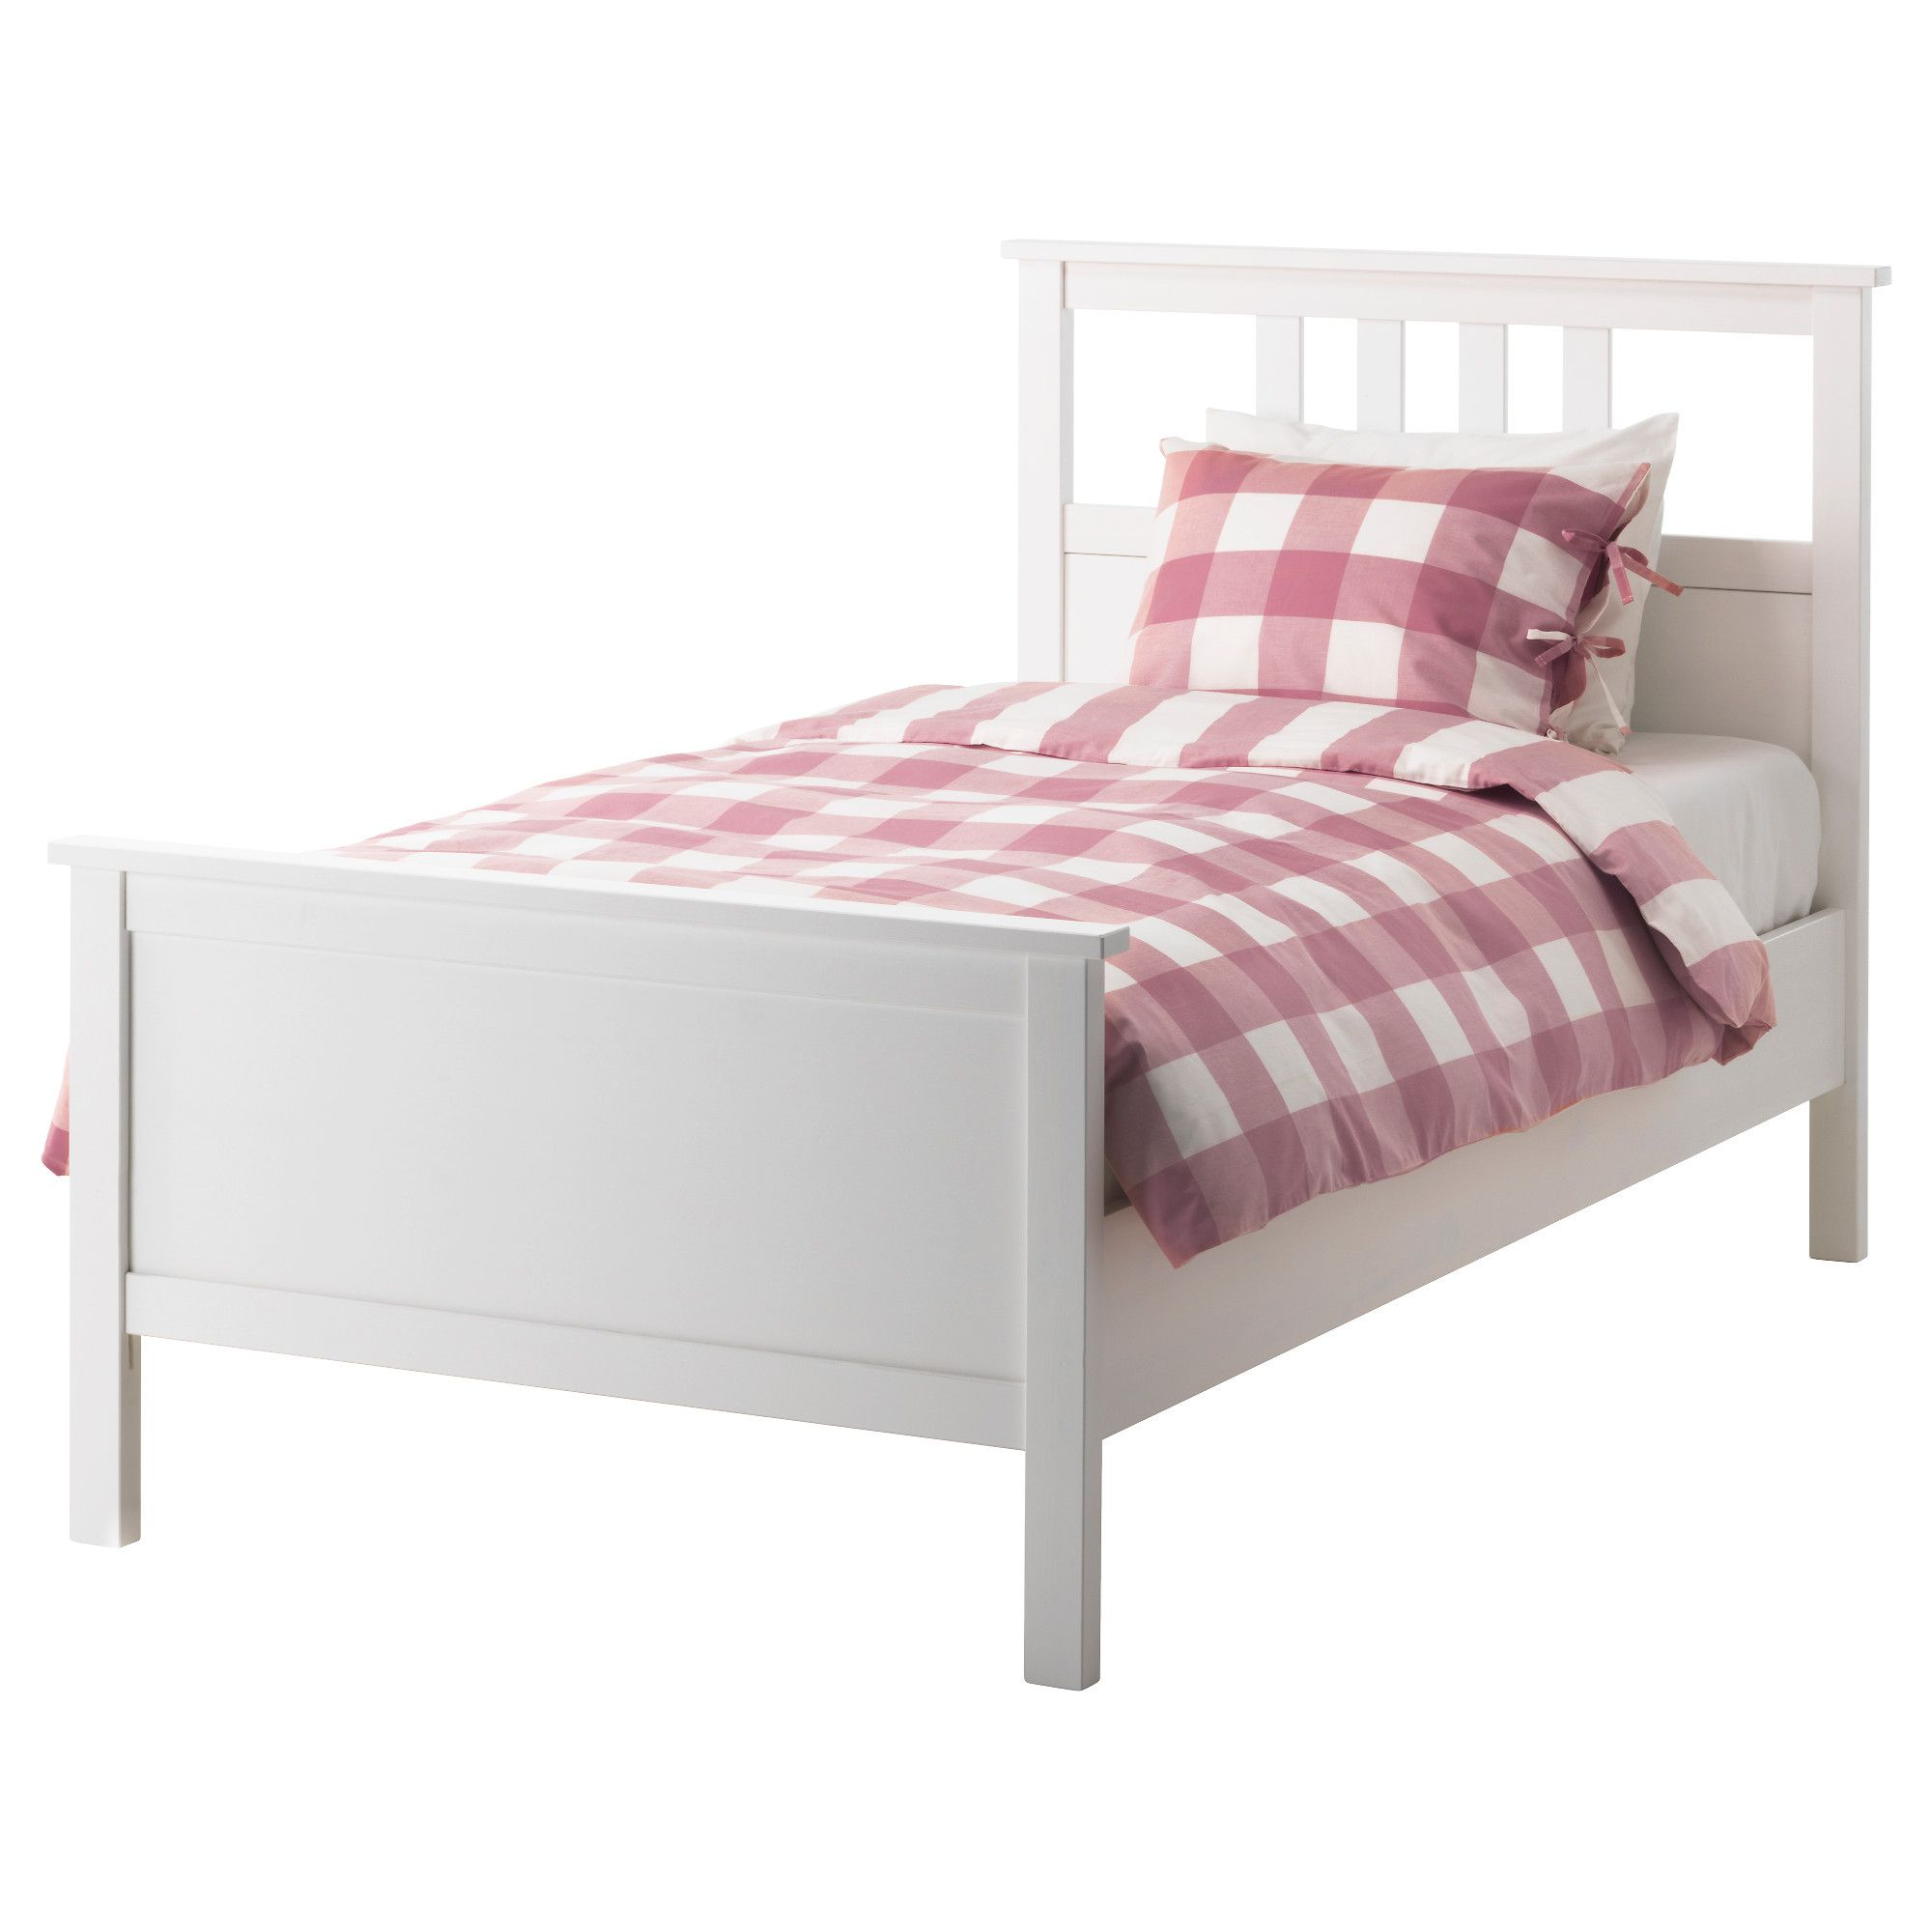 hemnes bed frame white stain lur y in 2019 lora 39 s room. Black Bedroom Furniture Sets. Home Design Ideas